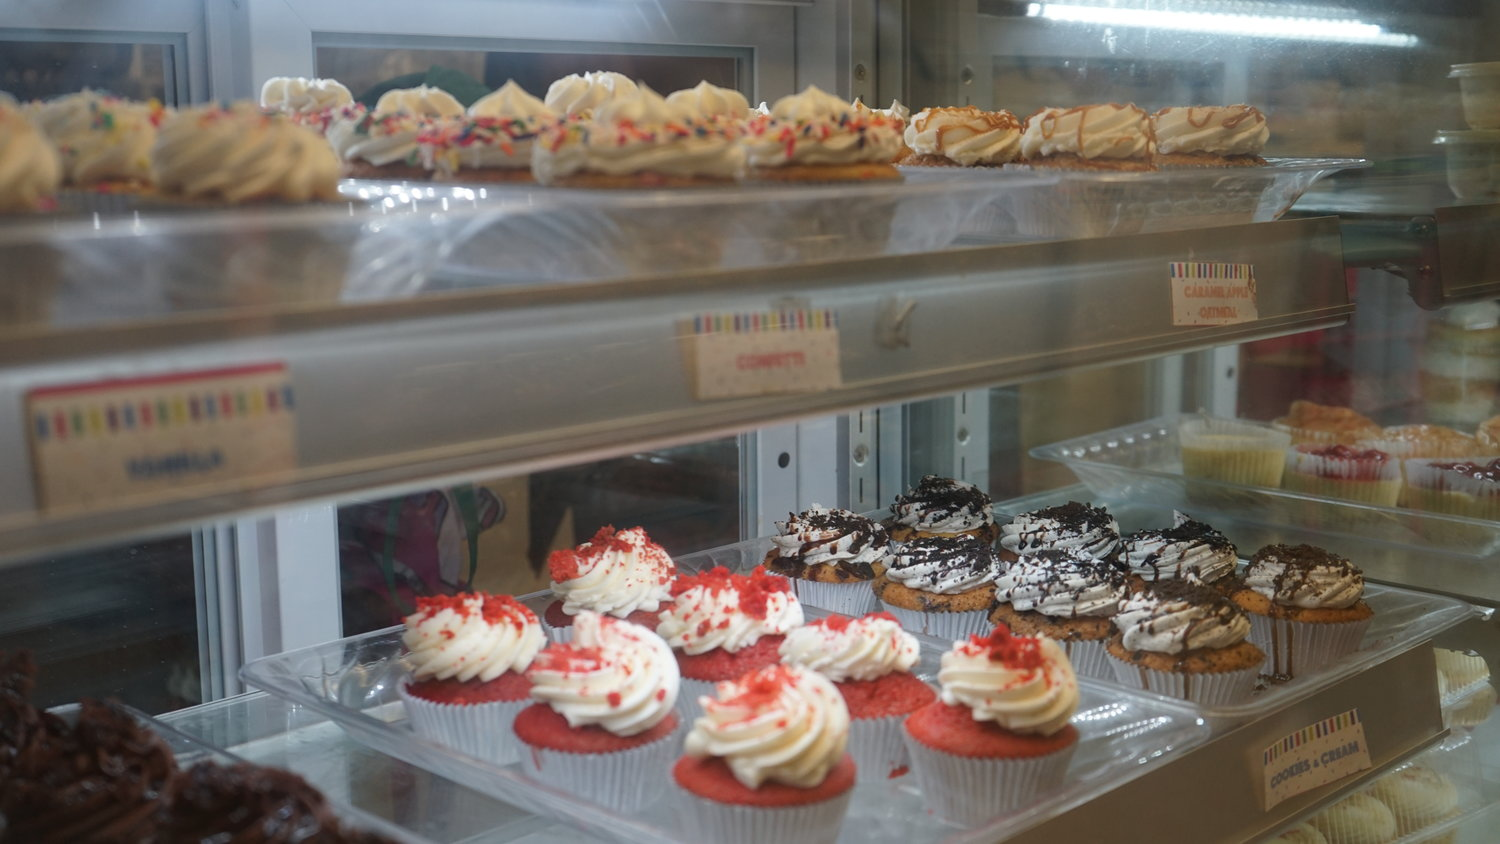 In addition to cakes, the shop provides a variety of sweets.